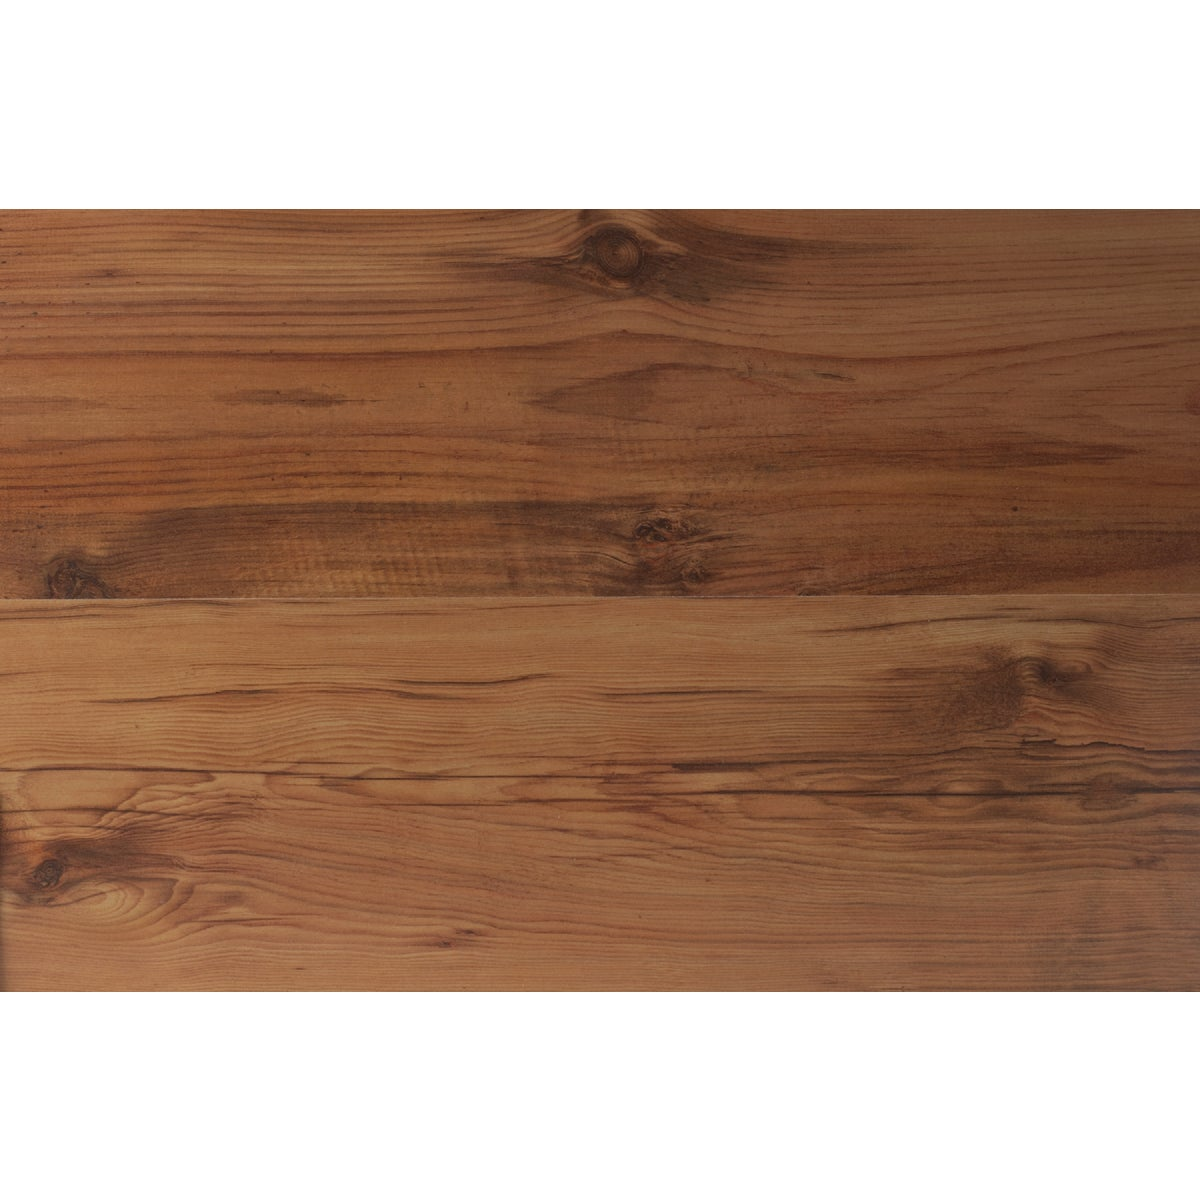 SACR PINE LAMINATE FLOOR - 279A by Balterio U S Inc